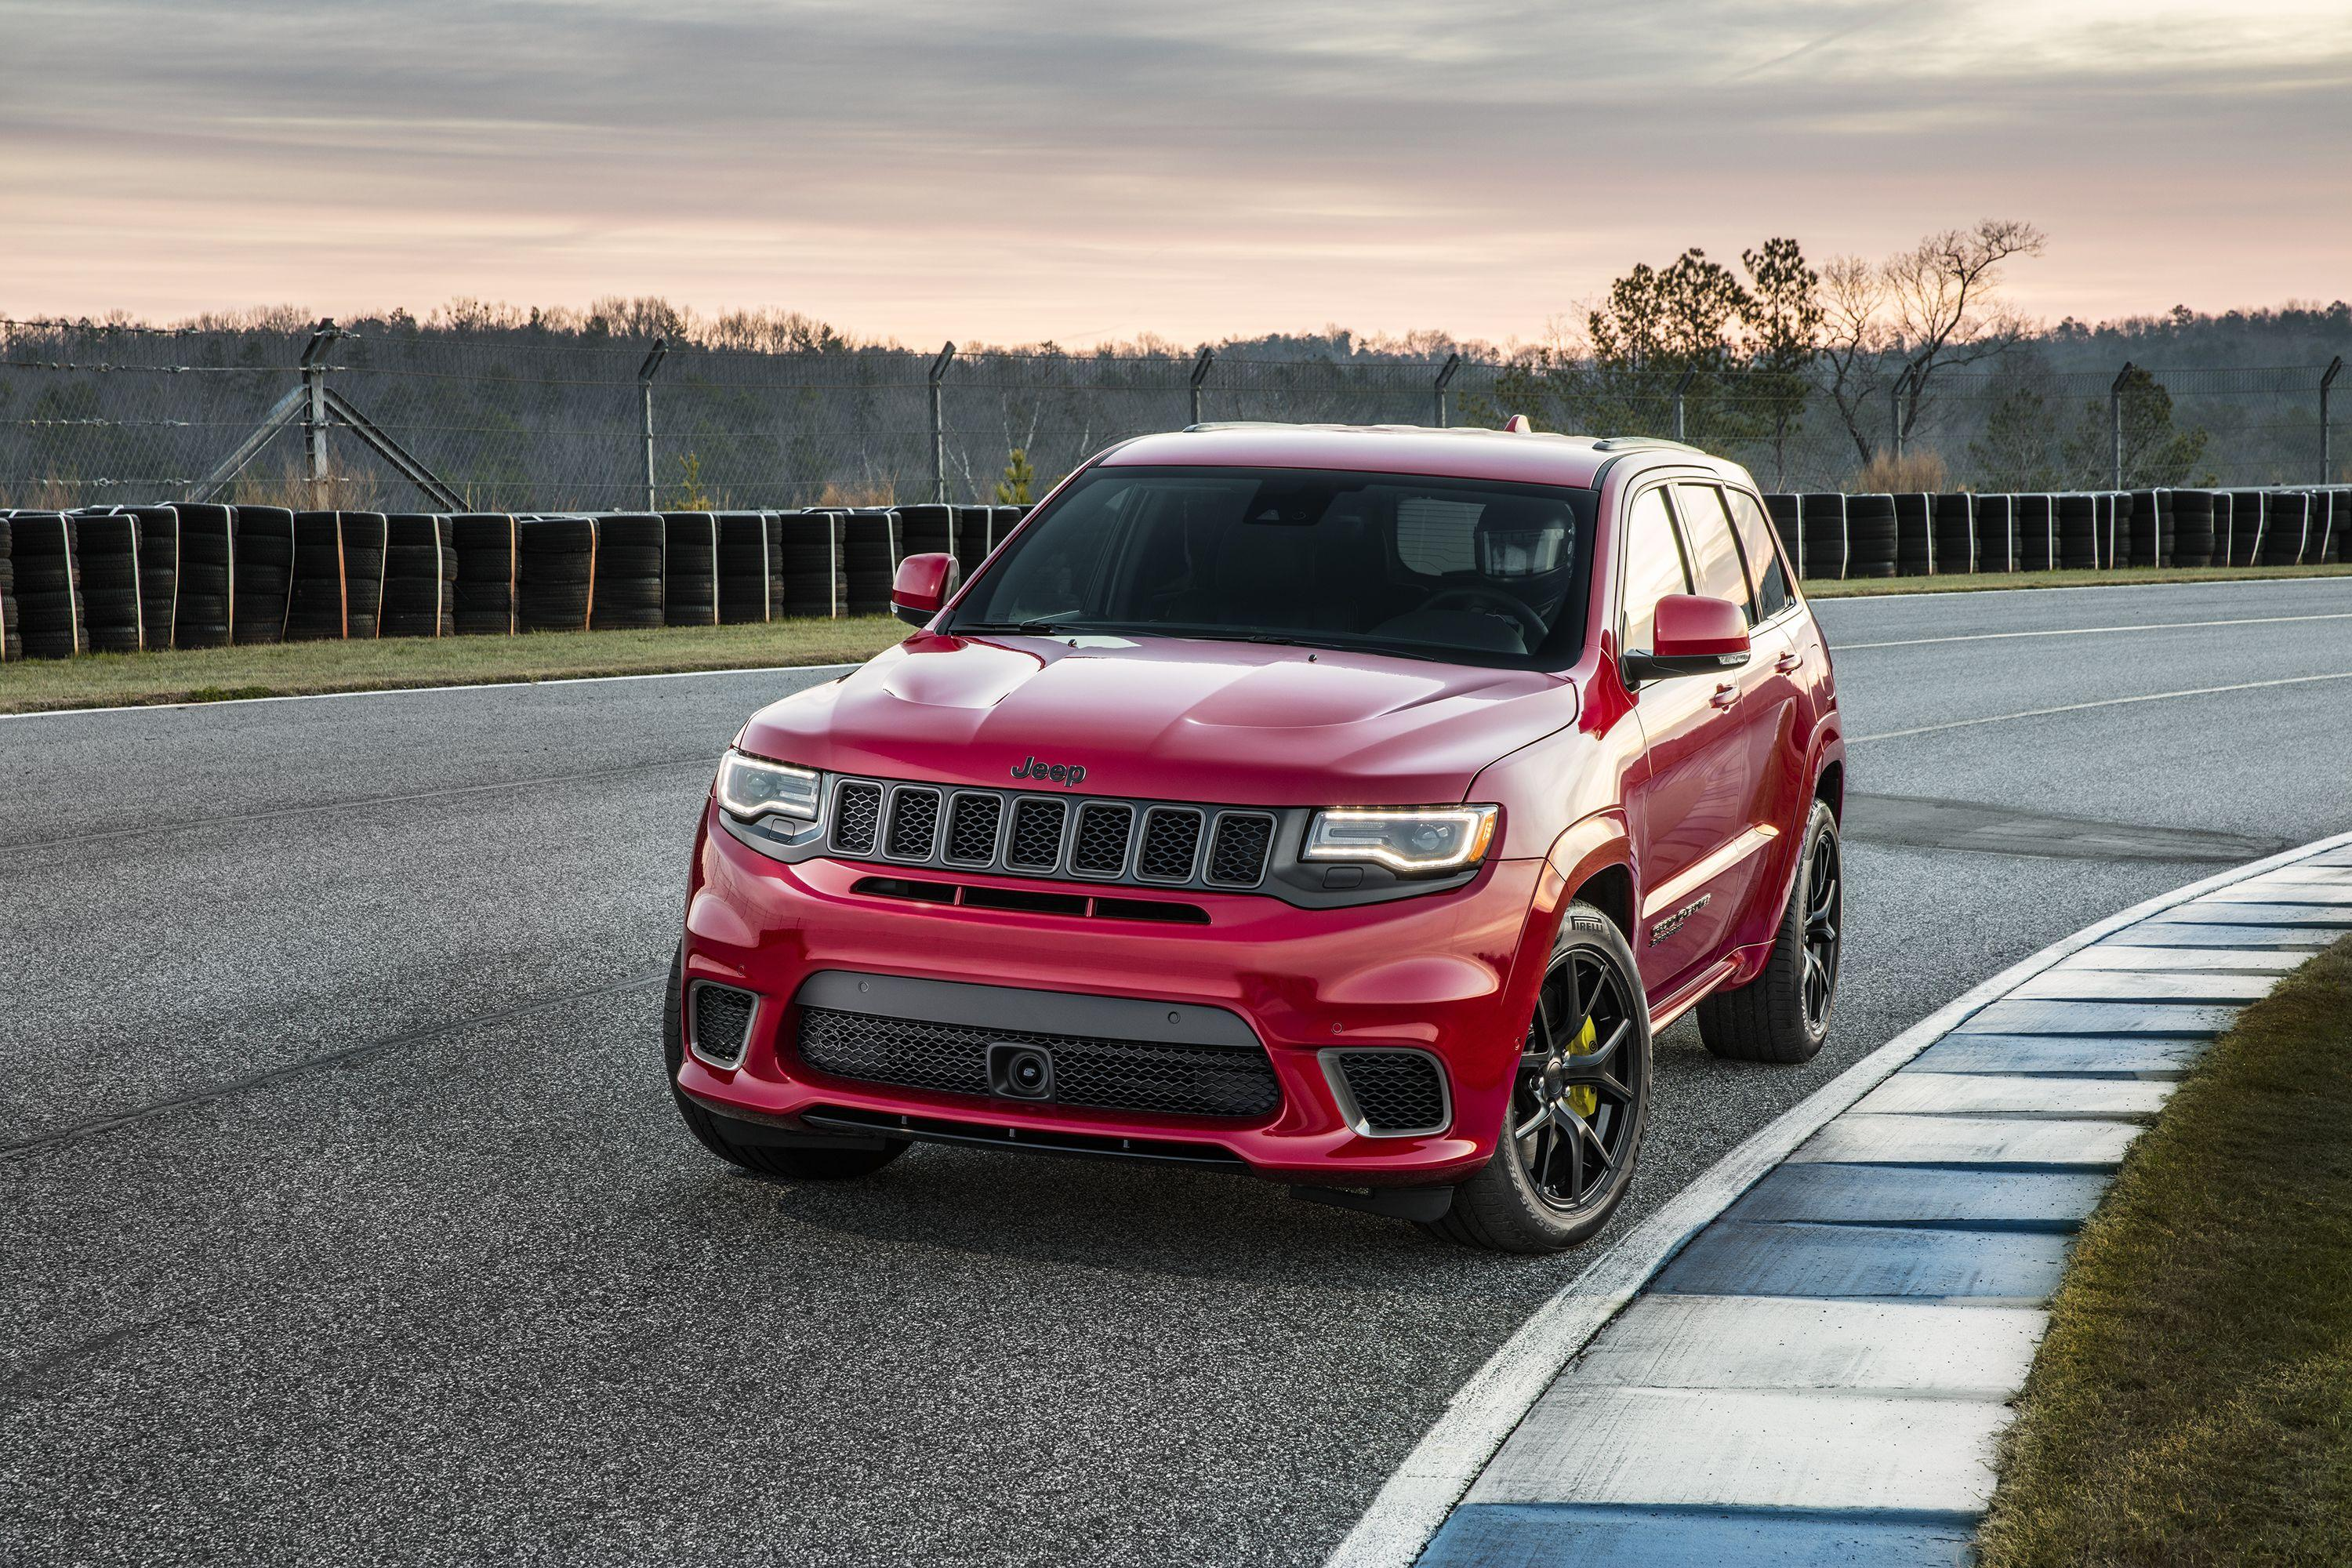 Jeep Grand Cherokee Trackhawk 2020 : pourquoi?